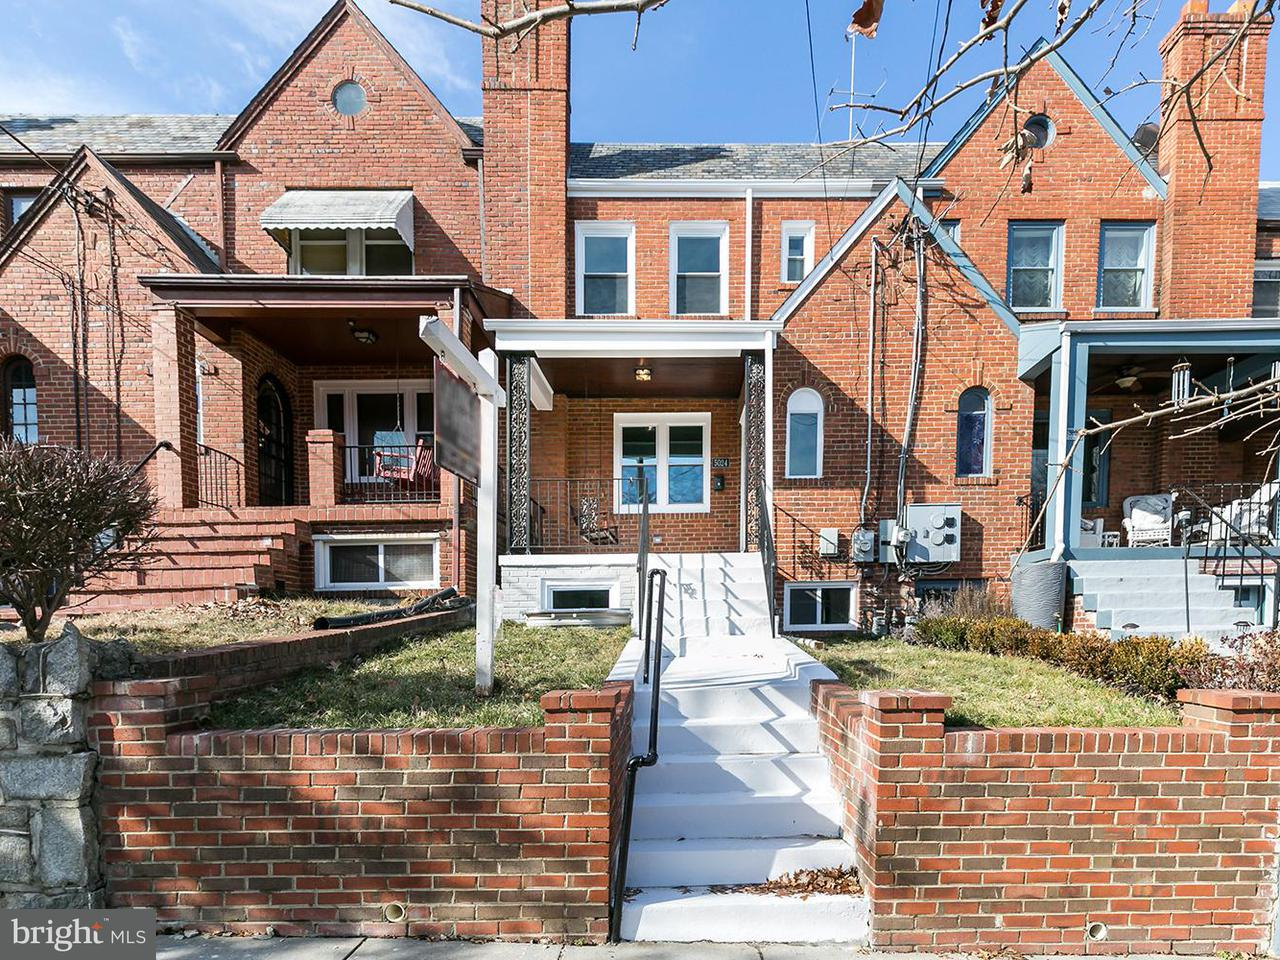 Townhouse for Sale at 5024 3rd St Nw 5024 3rd St Nw Washington, District Of Columbia 20011 United States